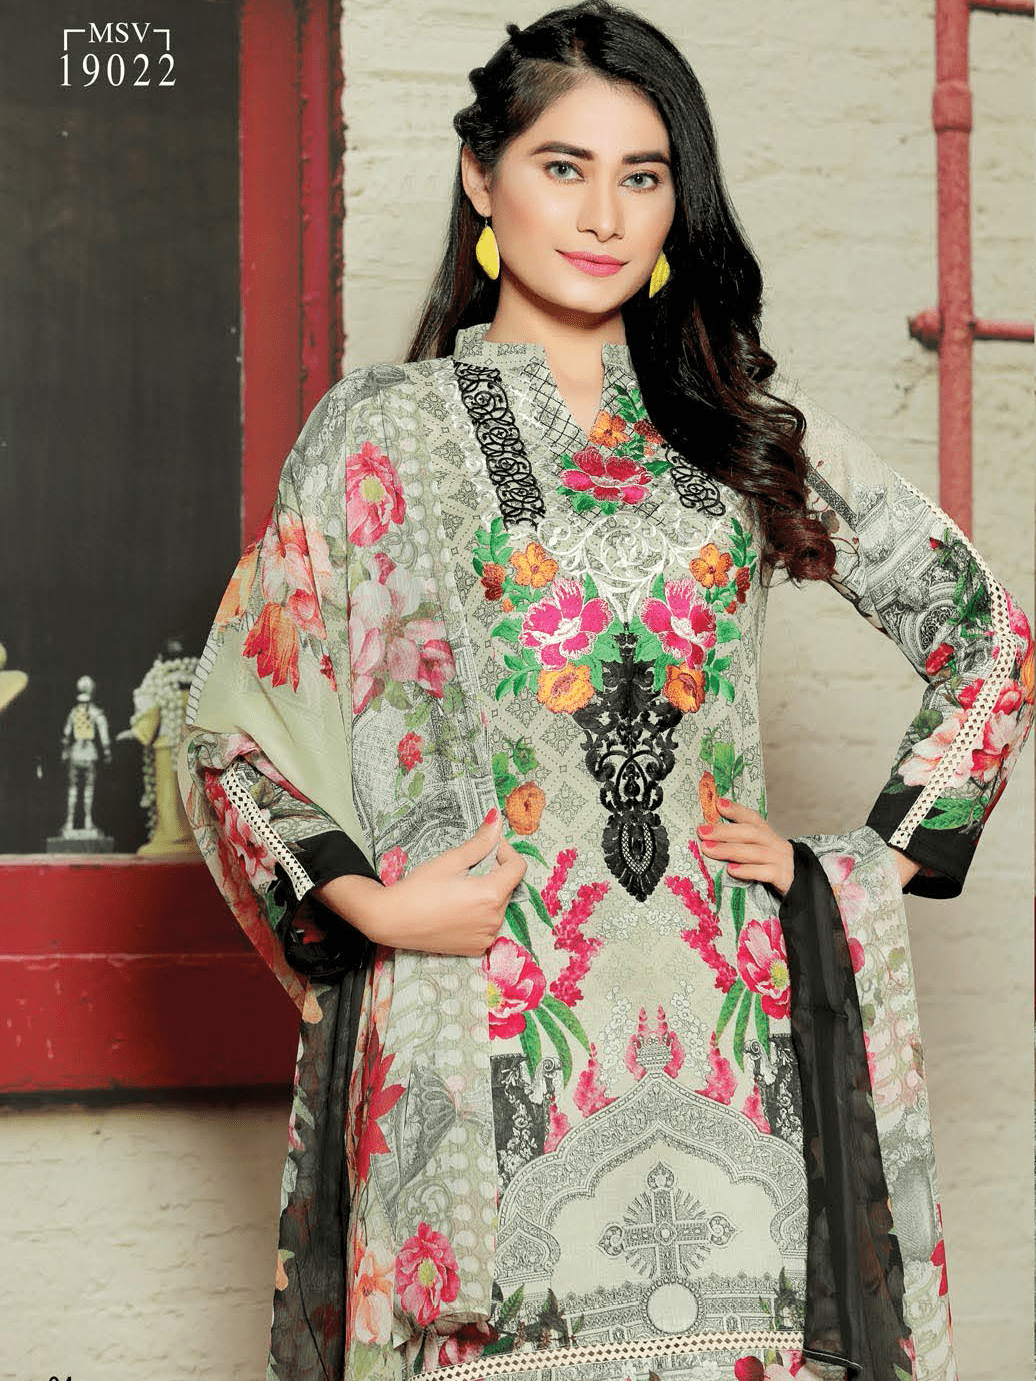 Aroosa Embroidered Swiss Lawn 2019 Unstitched 3 Piece Suit MSV-19022 - FaisalFabrics.pk